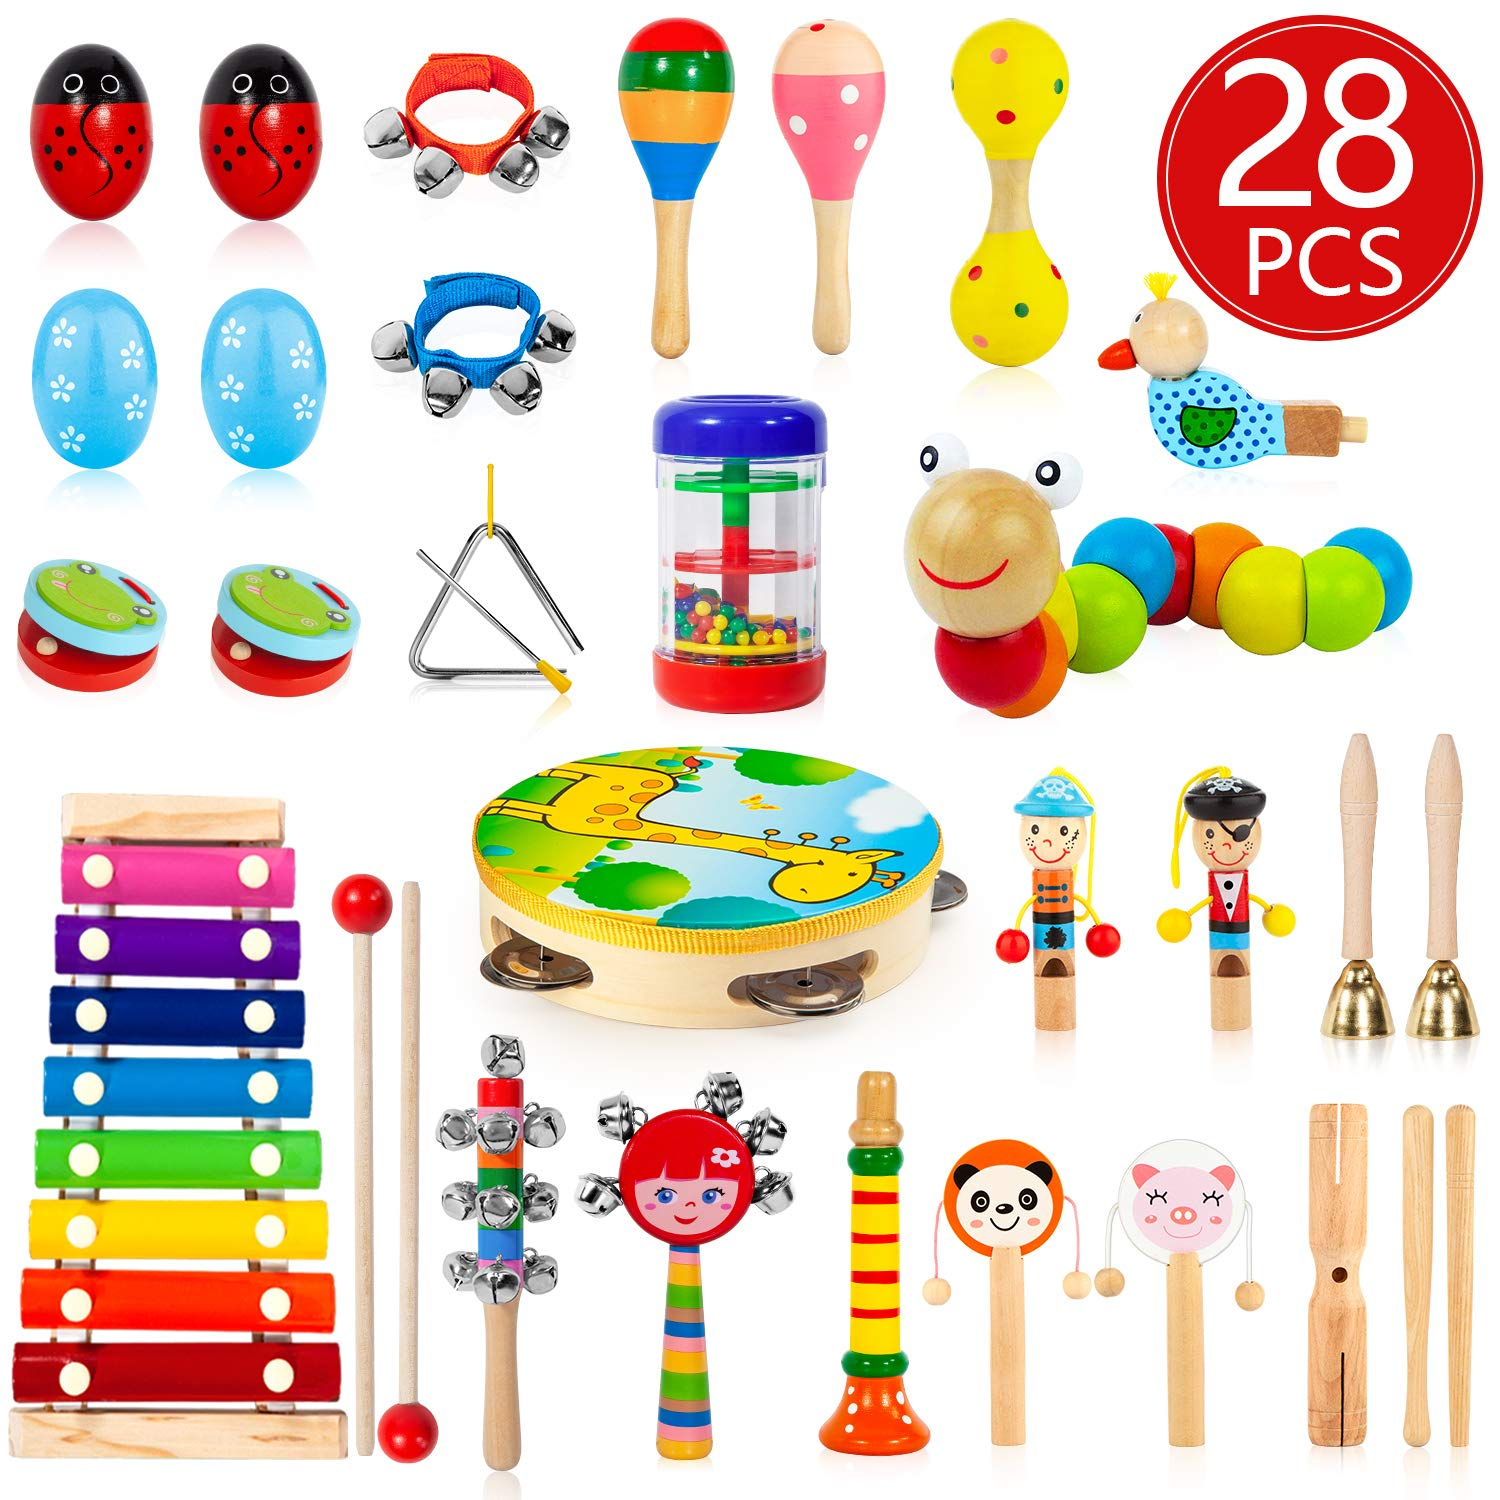 AOKIWO Kids Musical Instruments, 28Pcs 19Types Wooden Instruments Tambourine Xylophone Toys for Kids Children, Preschool Educational Learning Musical Toys for Boys Girls by AOKIWO